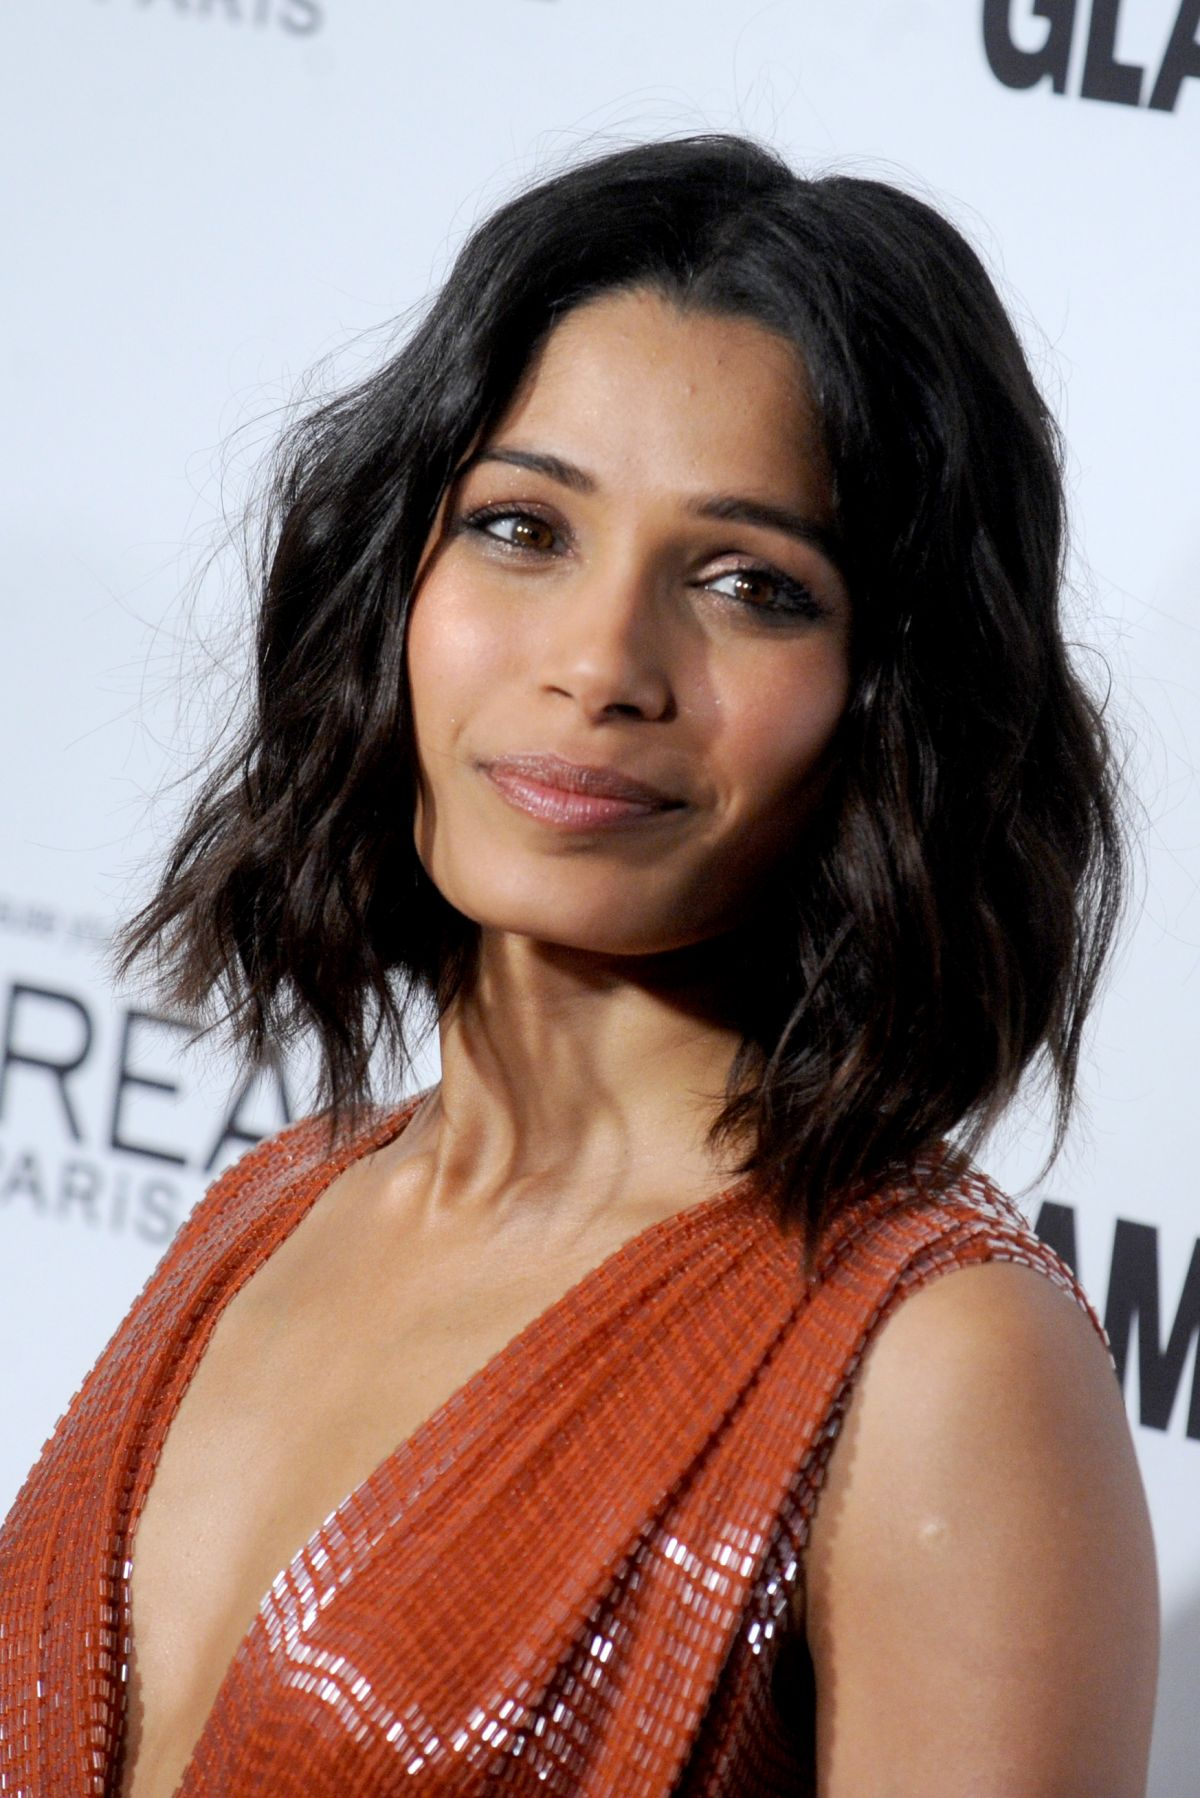 FREIDA PINTO at Glamour Women of the Year 2014 Awards in New York ... Freida Pinto